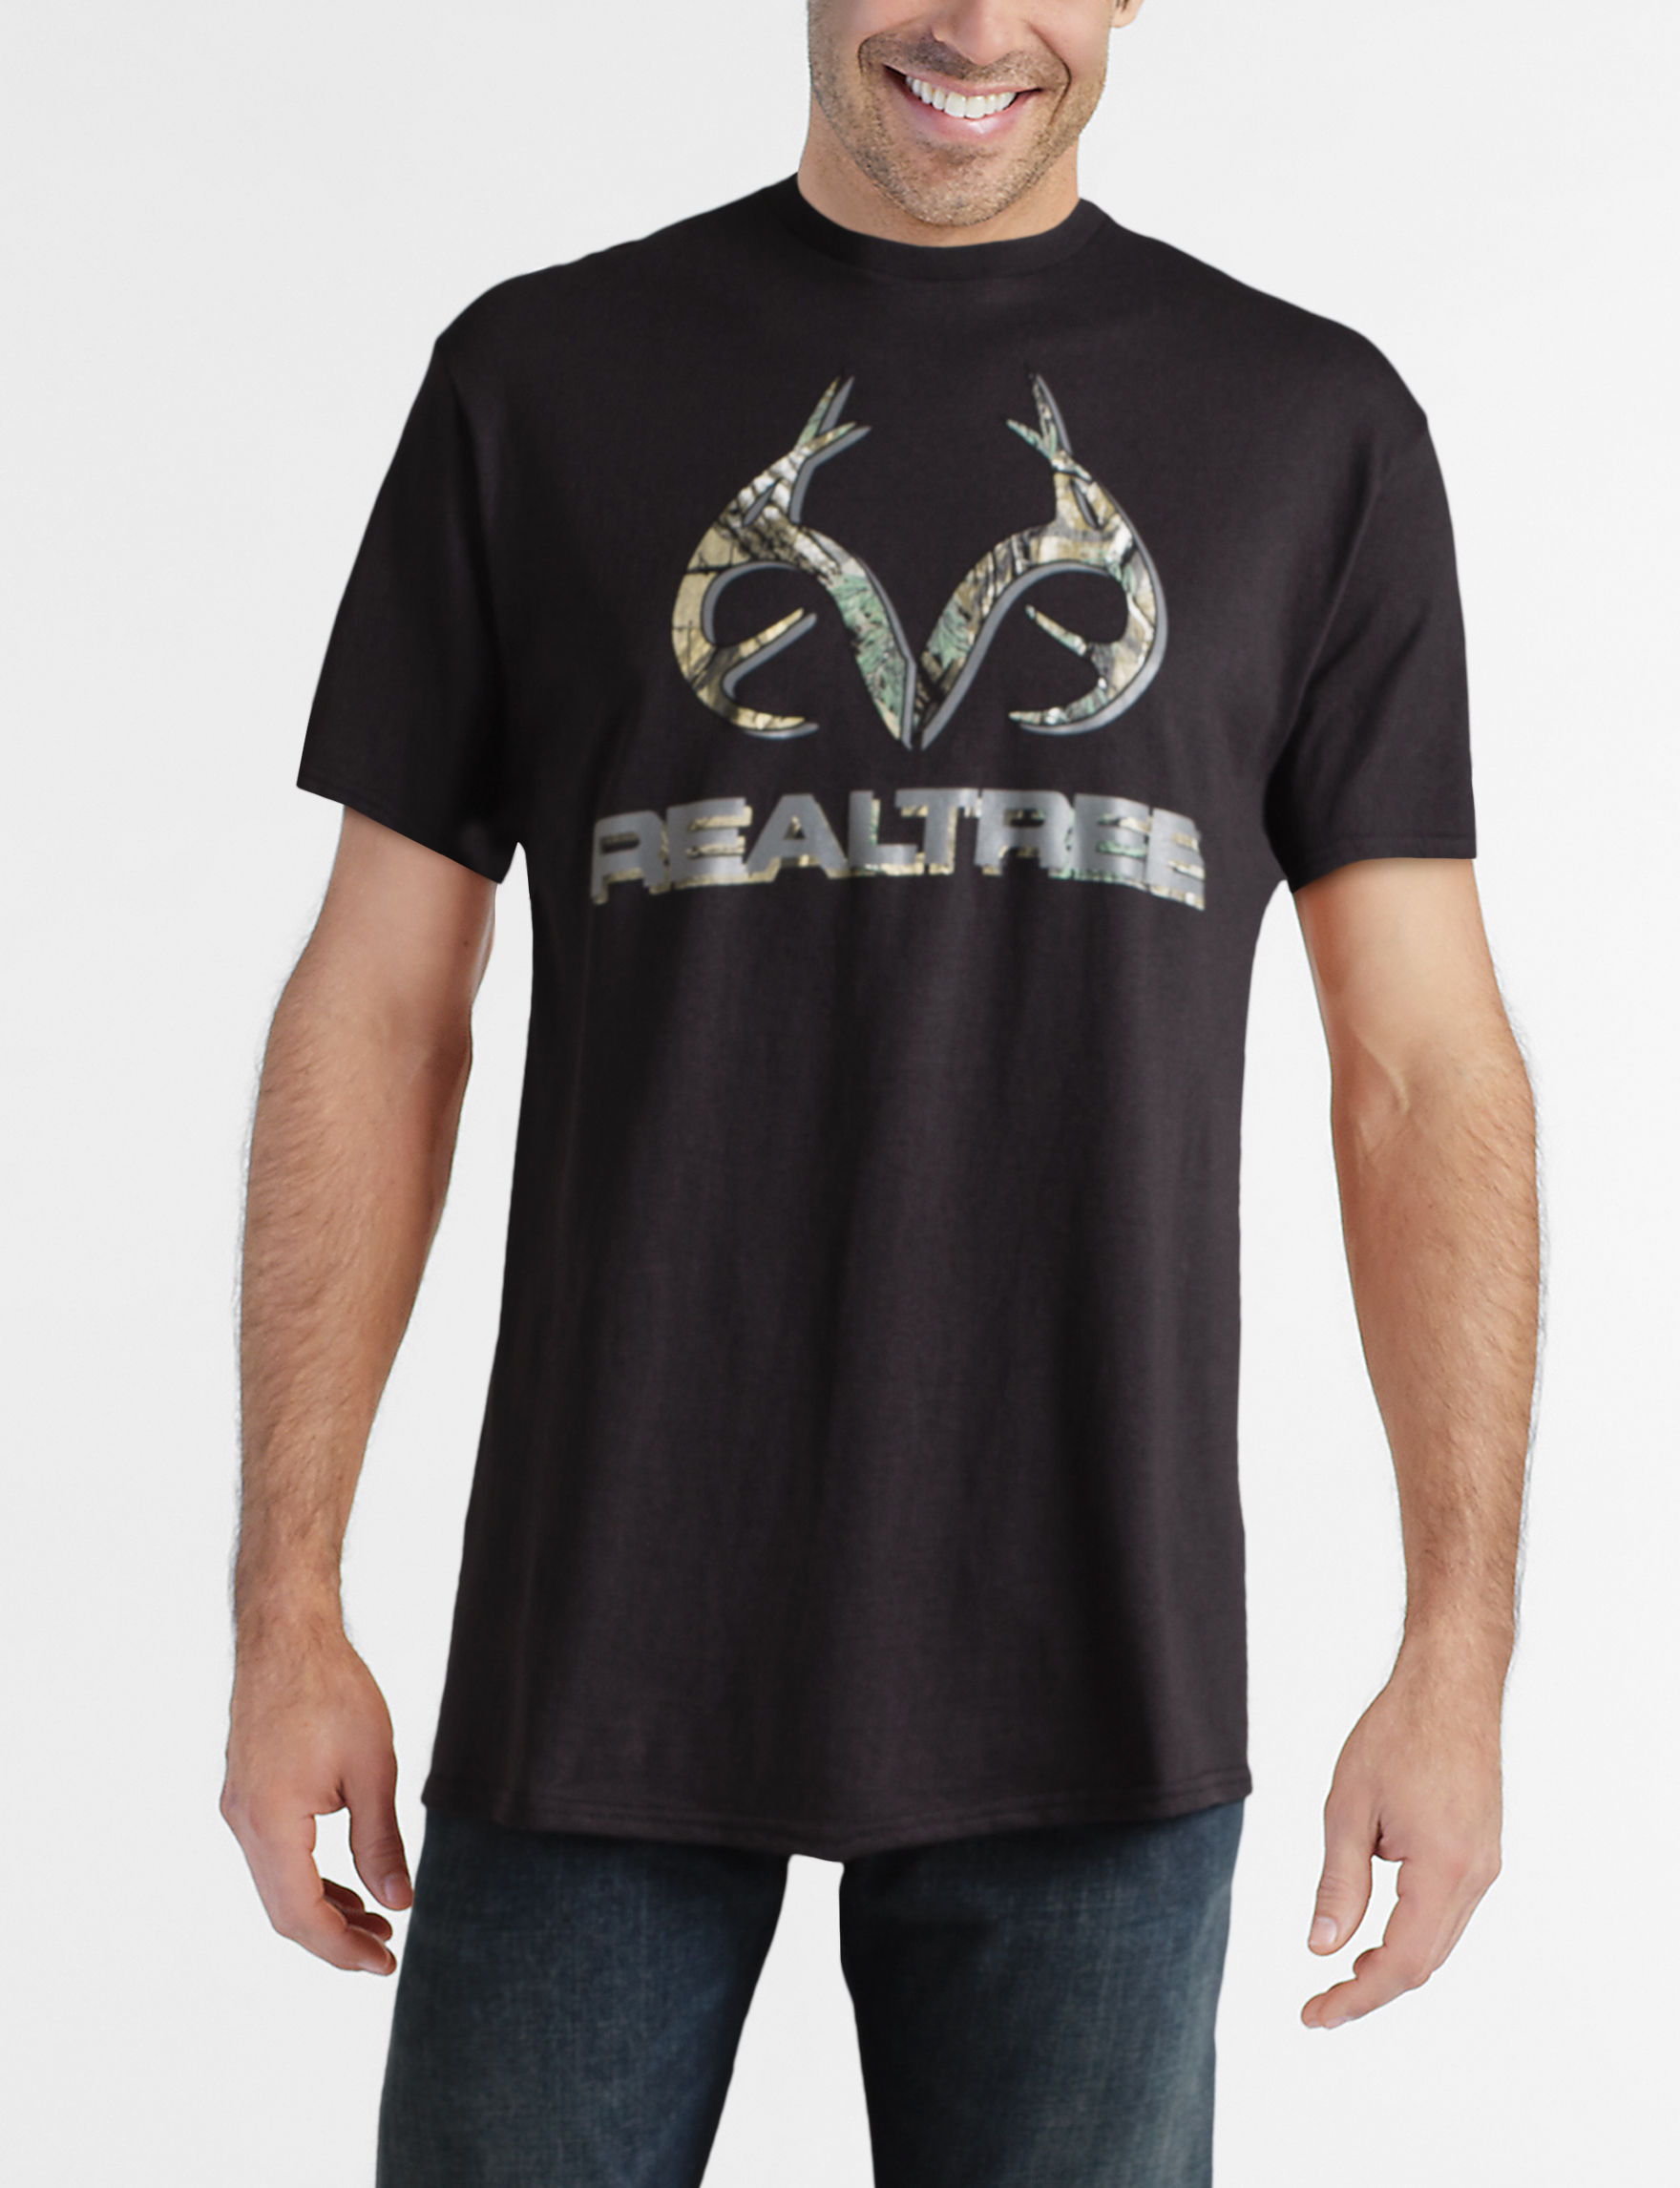 Realtree Black Tees & Tanks